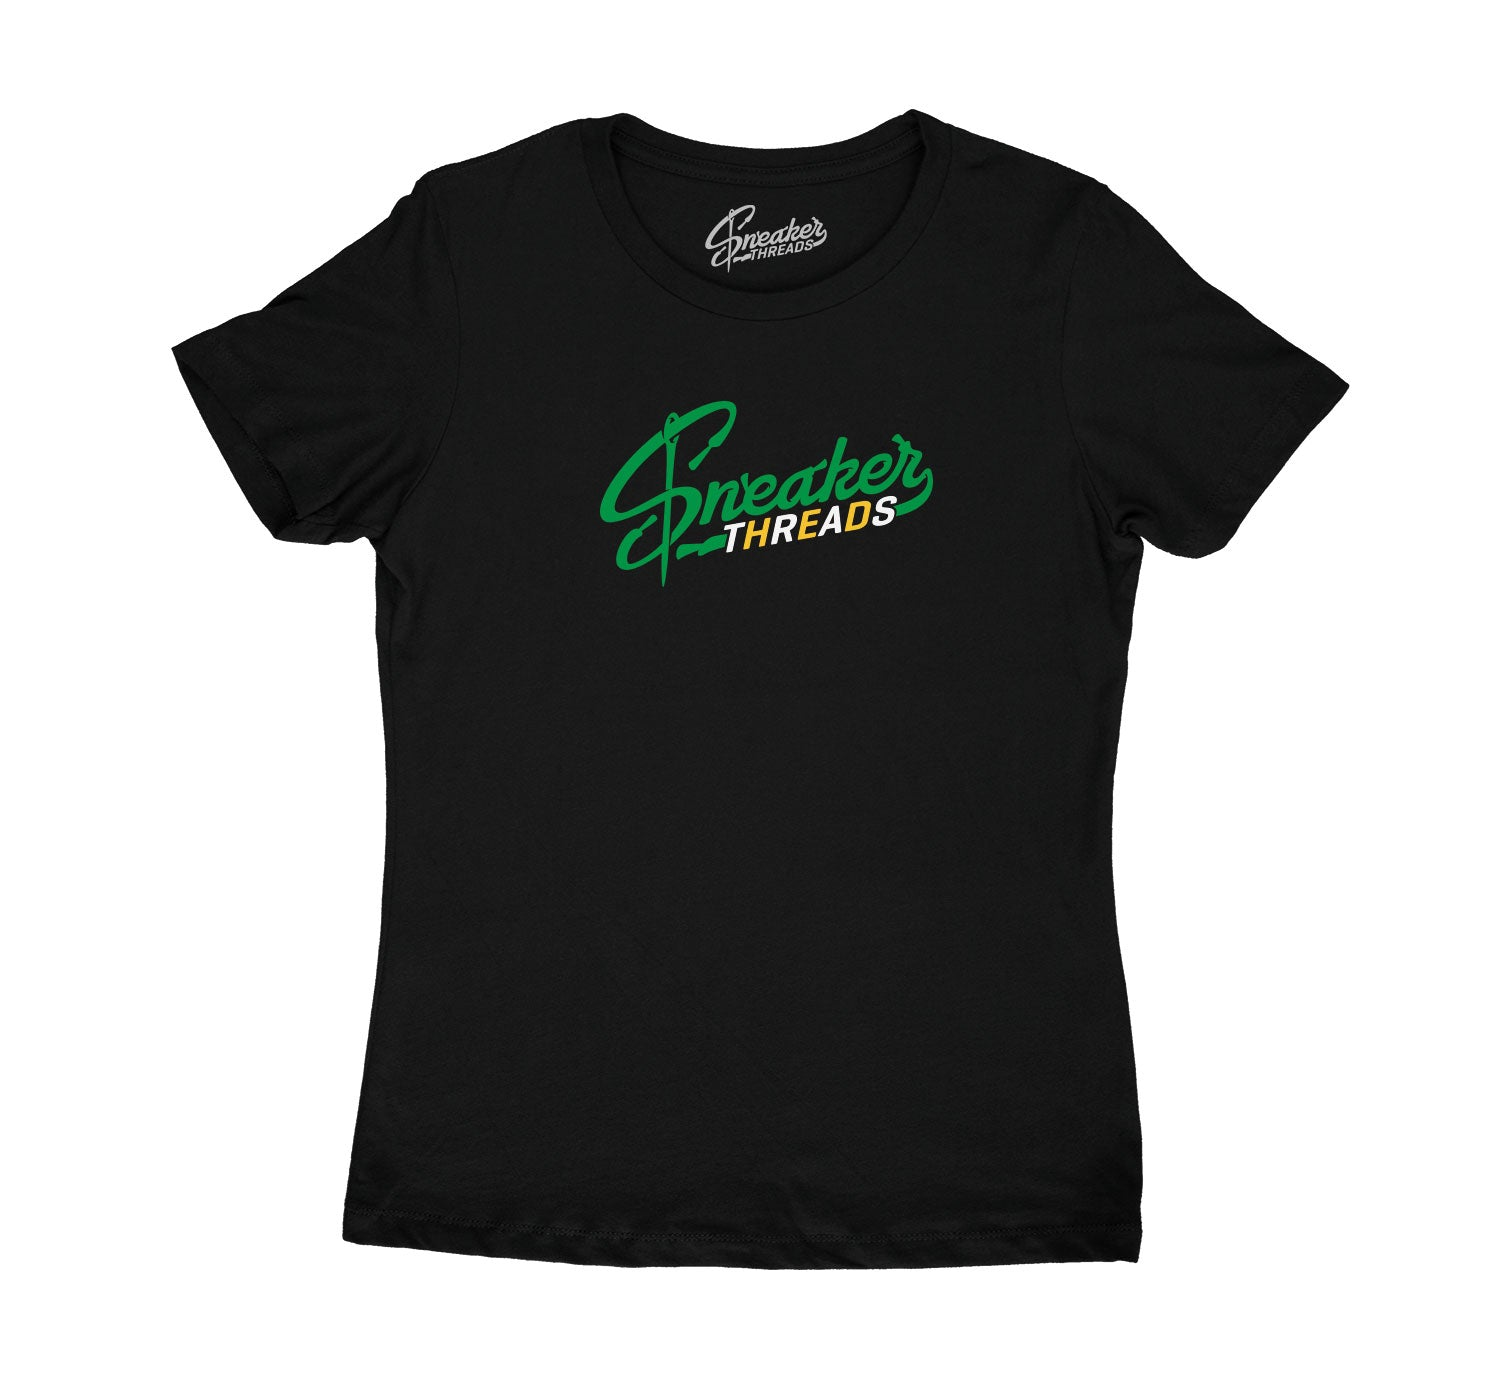 Jordan 10 women's Seattle sneaker matching womens tees